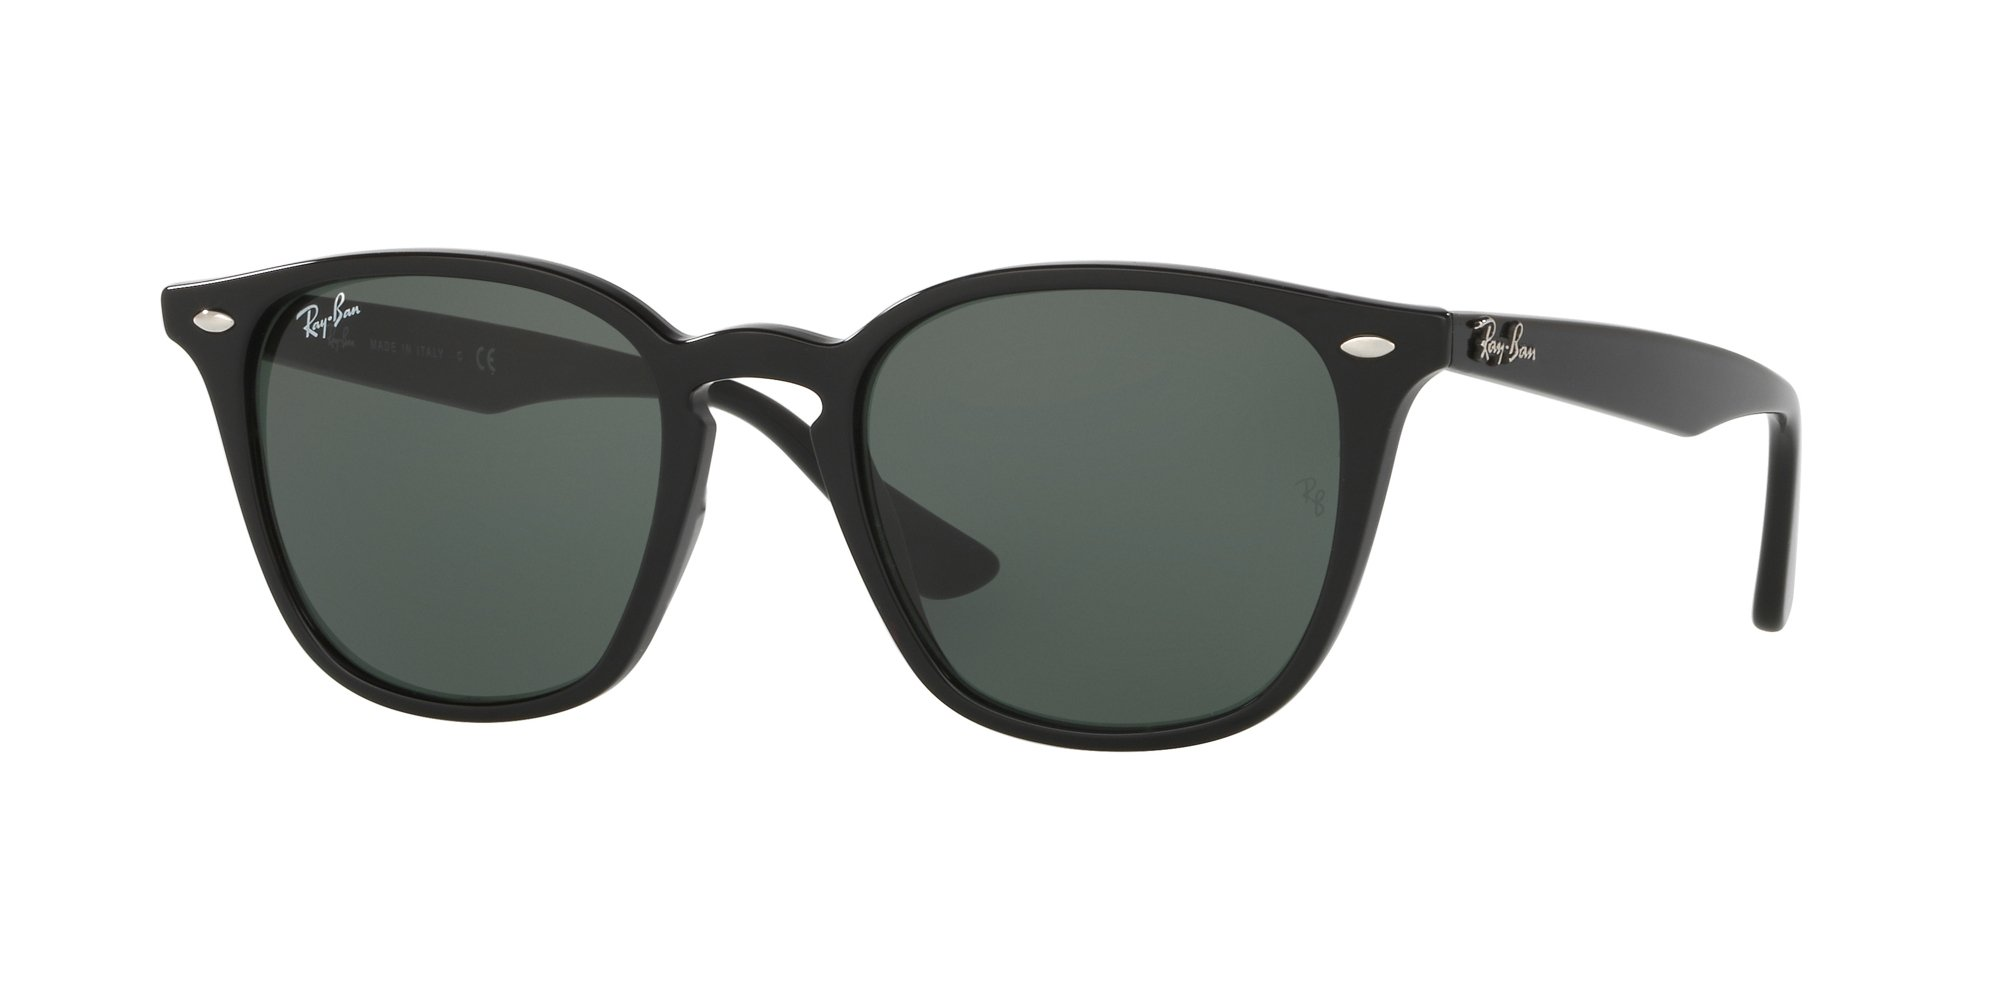 Zoll Auktion 1 Ray Ban Sonnenbrille